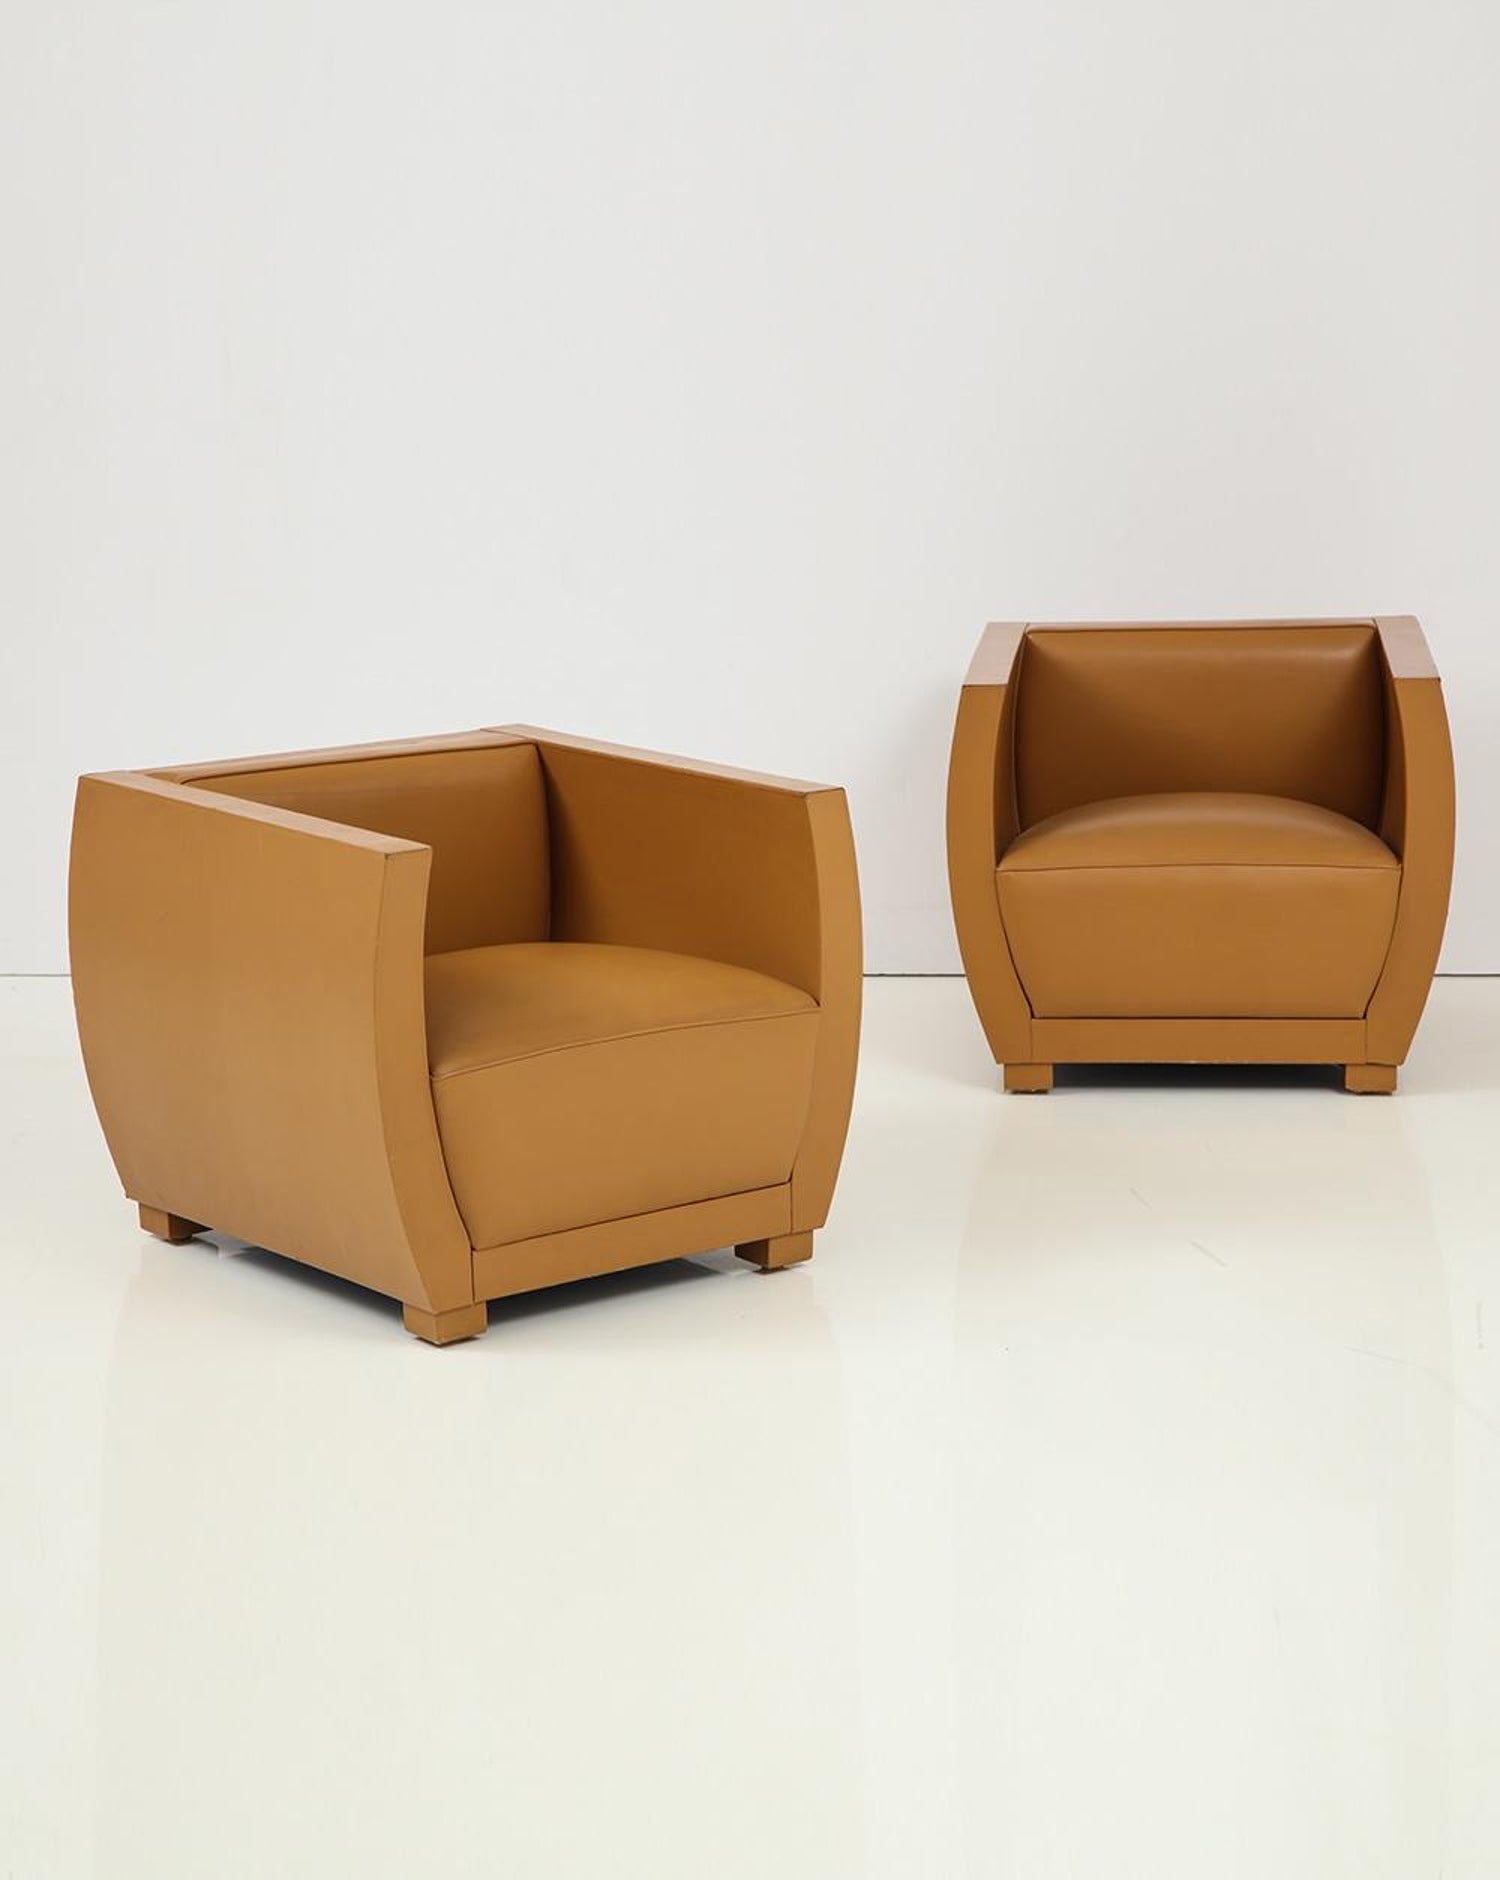 Outstanding Pair Of Camel Colored Leather Clad Club Chairs Evergreenethics Interior Chair Design Evergreenethicsorg